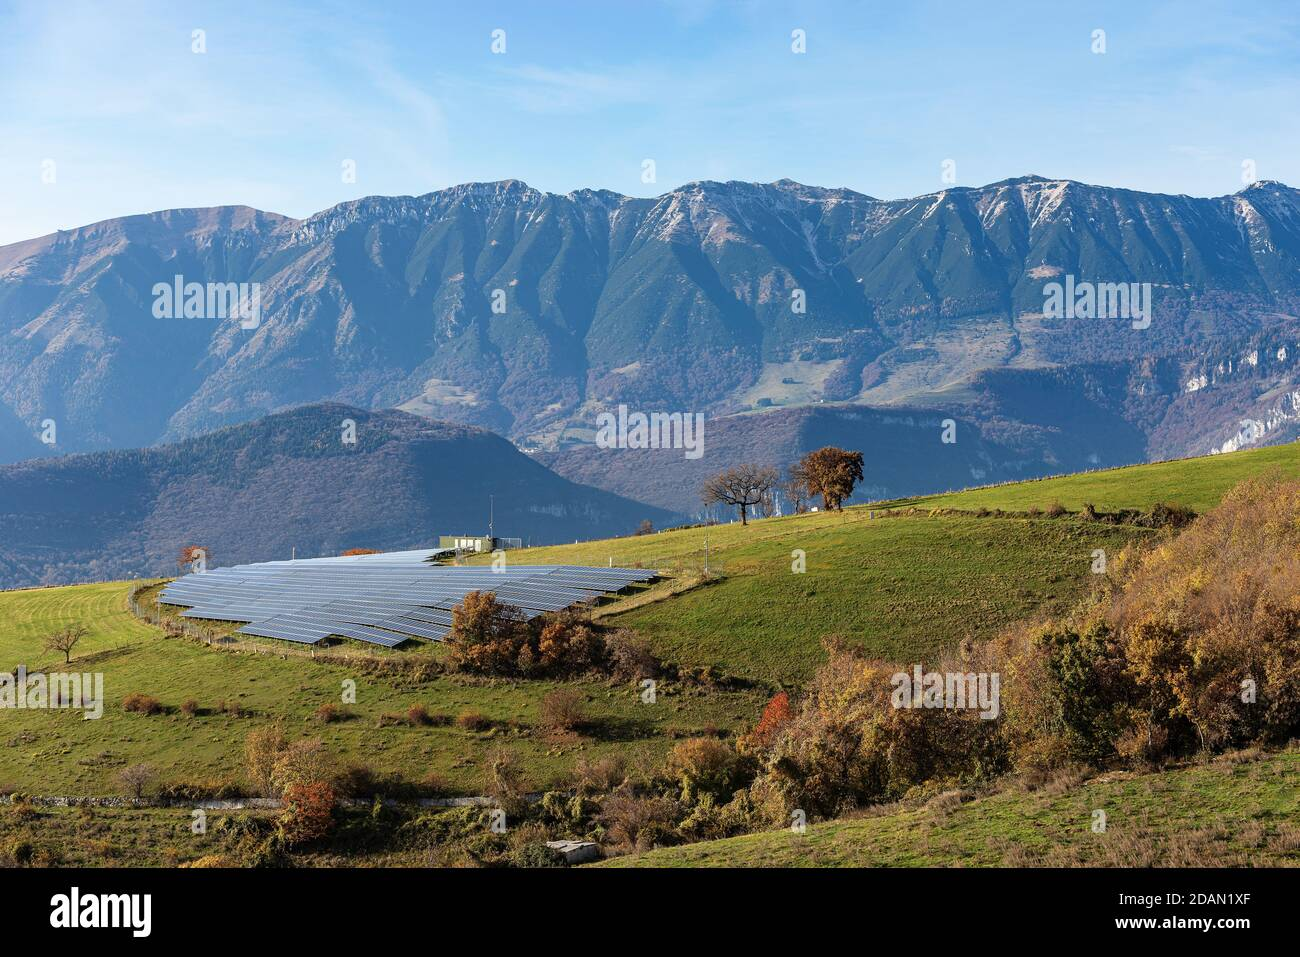 Solar power station in Italian Alps with many solar panels, Lessinia Plateau with the Mountain range of Monte Baldo. Italy. Renewable Energy concept. Stock Photo